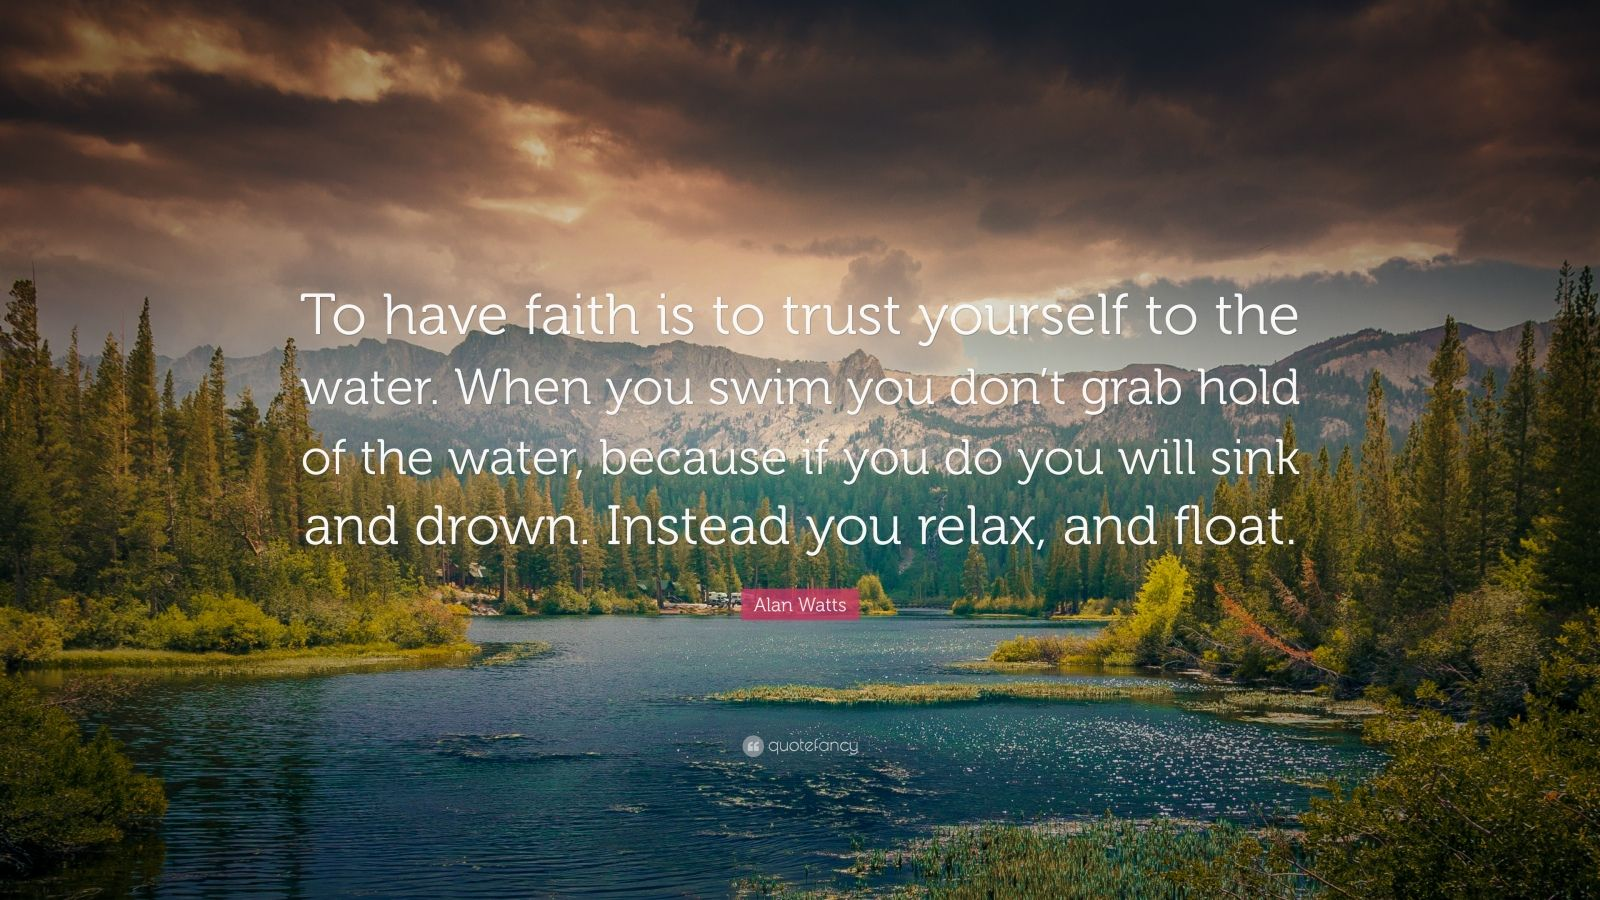 Nice Wallpapers With Inspiring Quotes Alan Watts Quote To Have Faith Is To Trust Yourself To